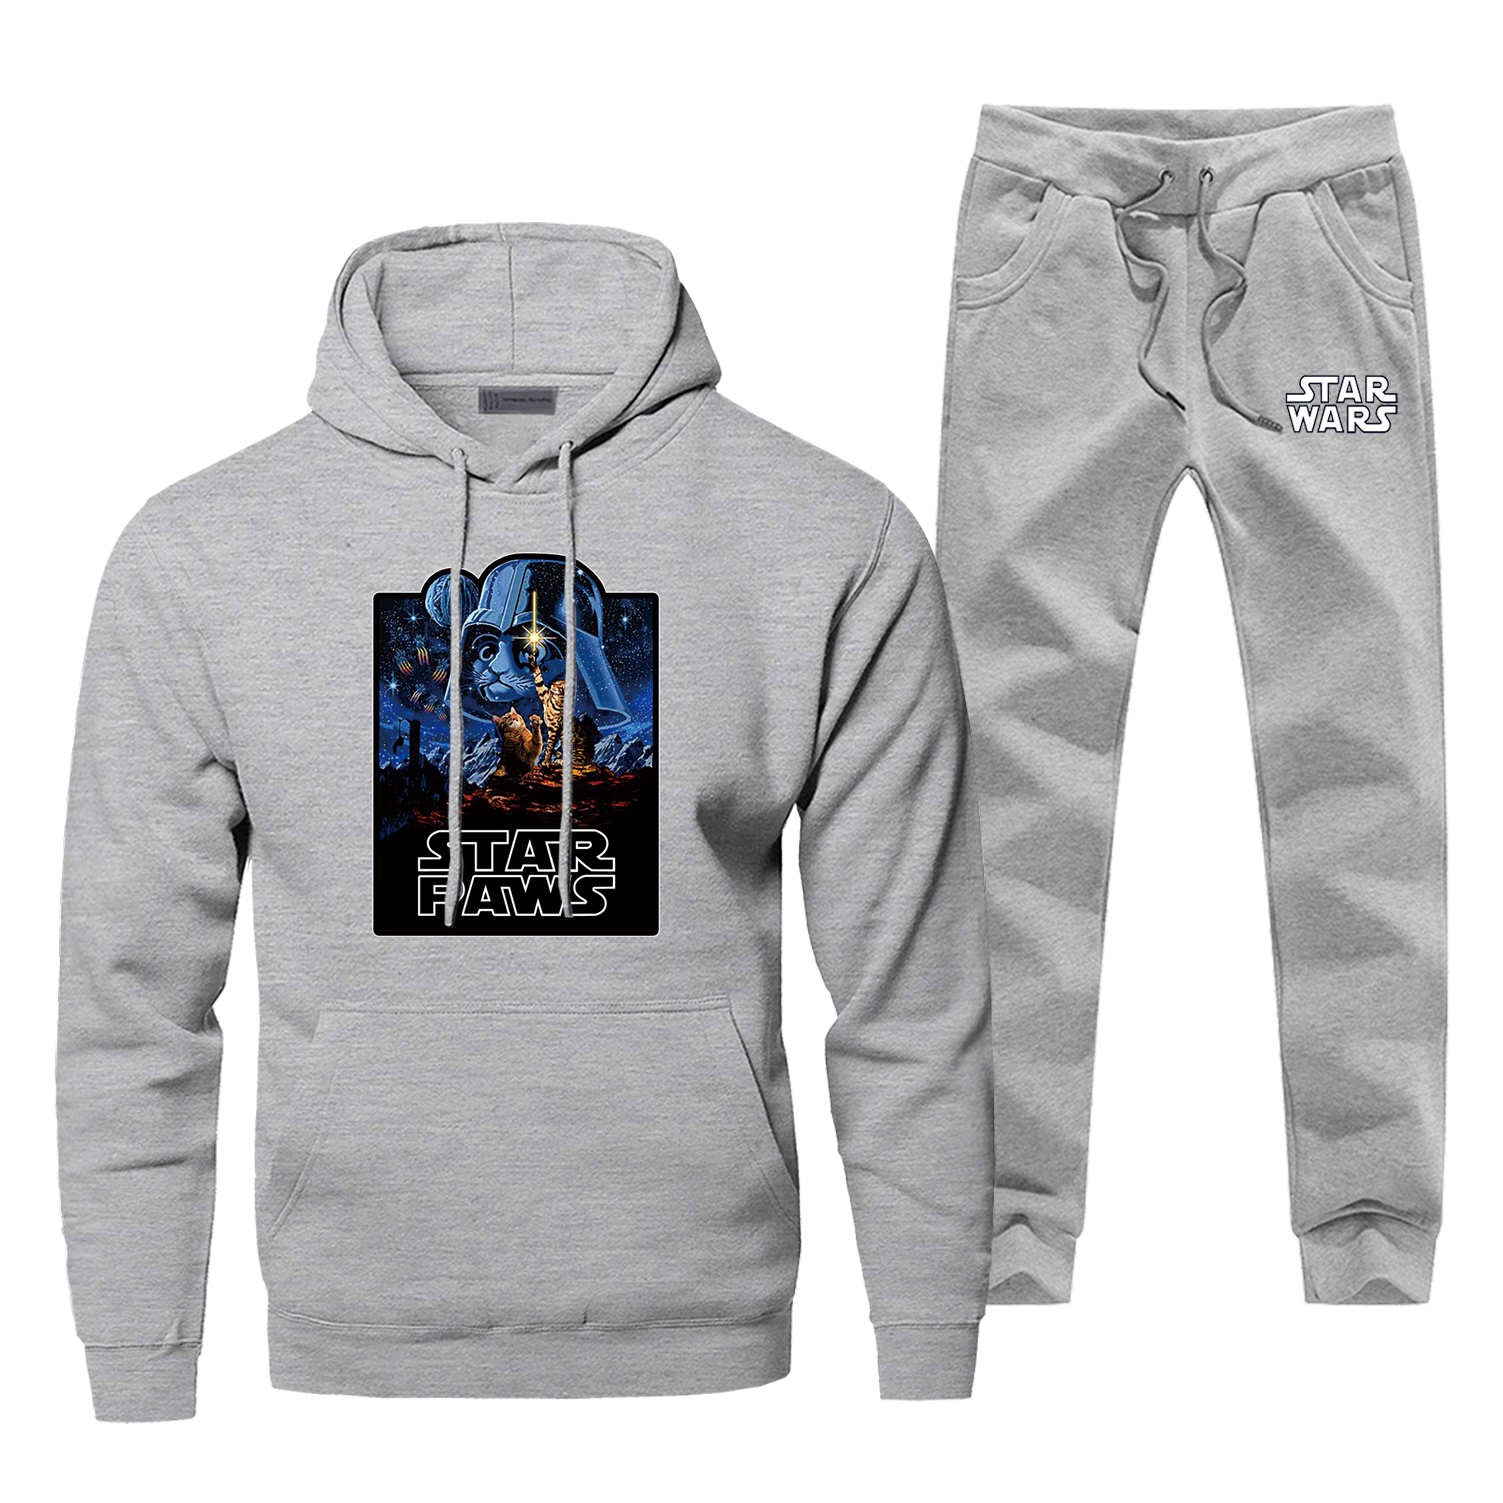 Star Wars Darth Vader Men Hoodies Sweatshirts Pants Sets Hooded Hoodie Suit Tracks 2 PCS Hoody Selfie Stormtrooper Pullover Set